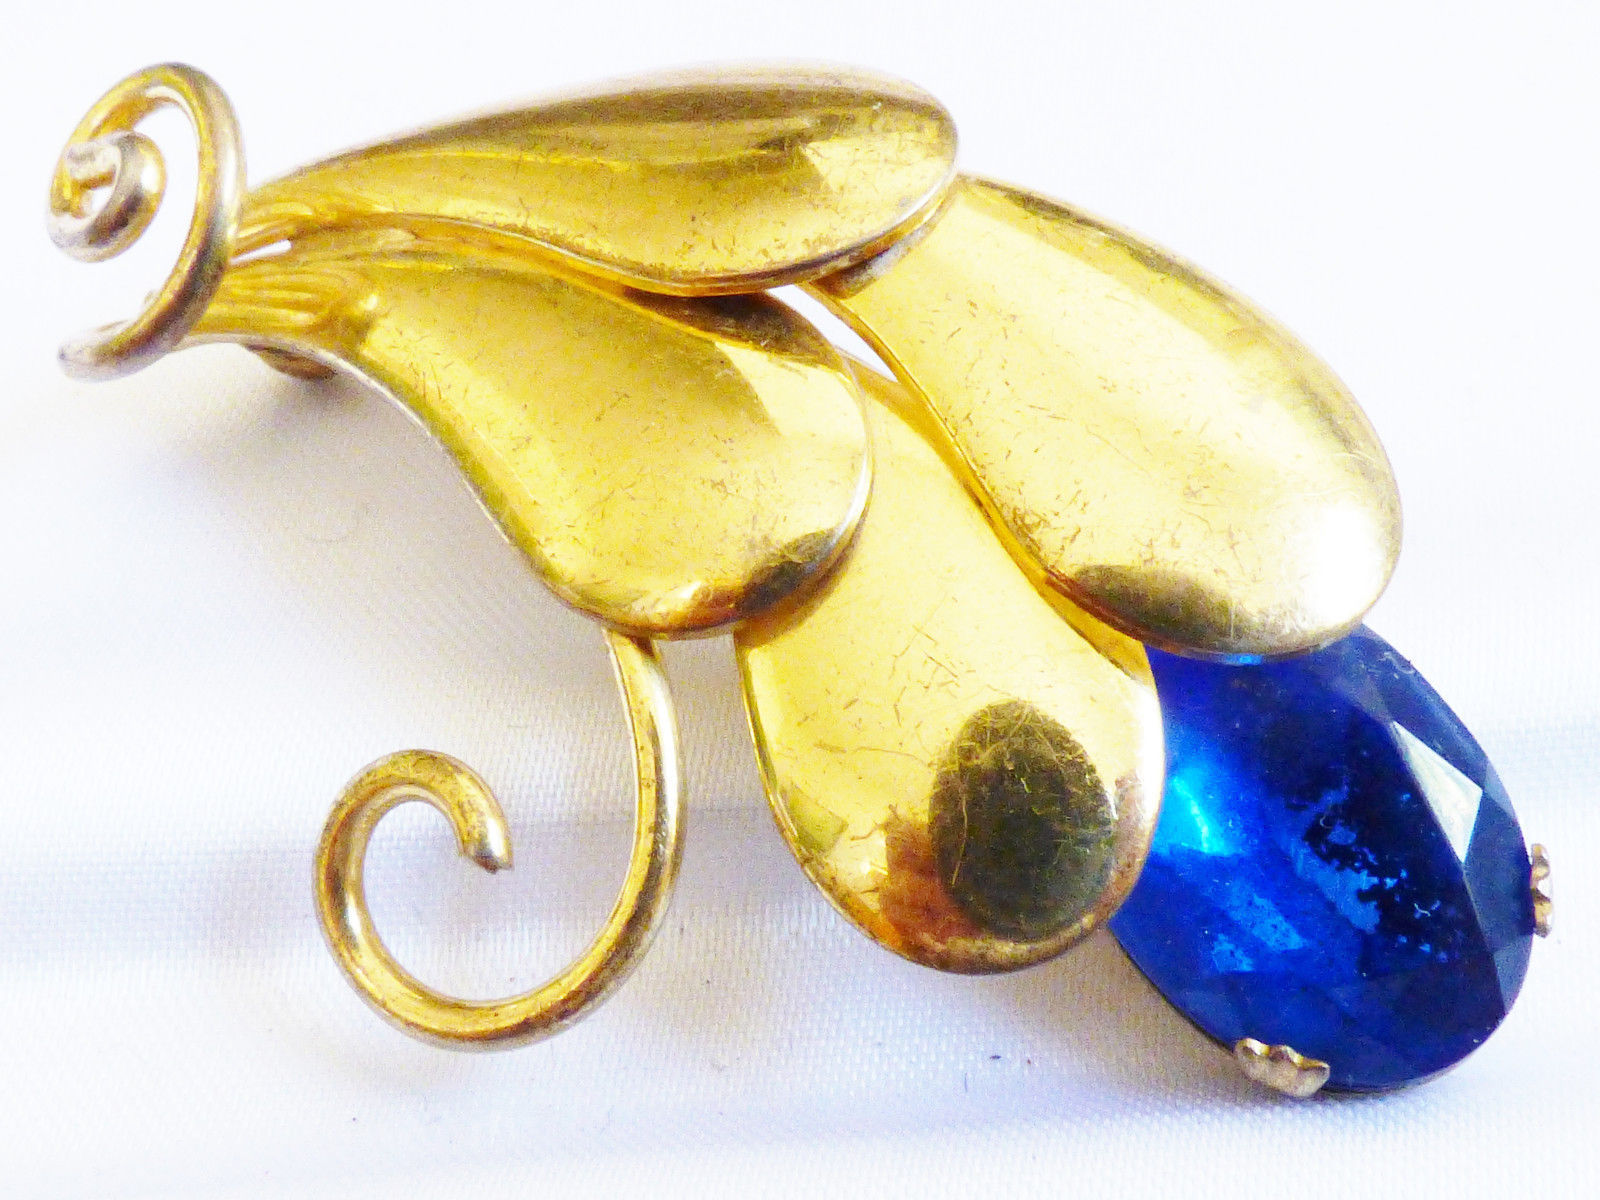 VTG GOLD TONE METAL FLORAL LEAF COBALT BLUE OVAL CRYSTAL RHINESTONE PIN BROOCH